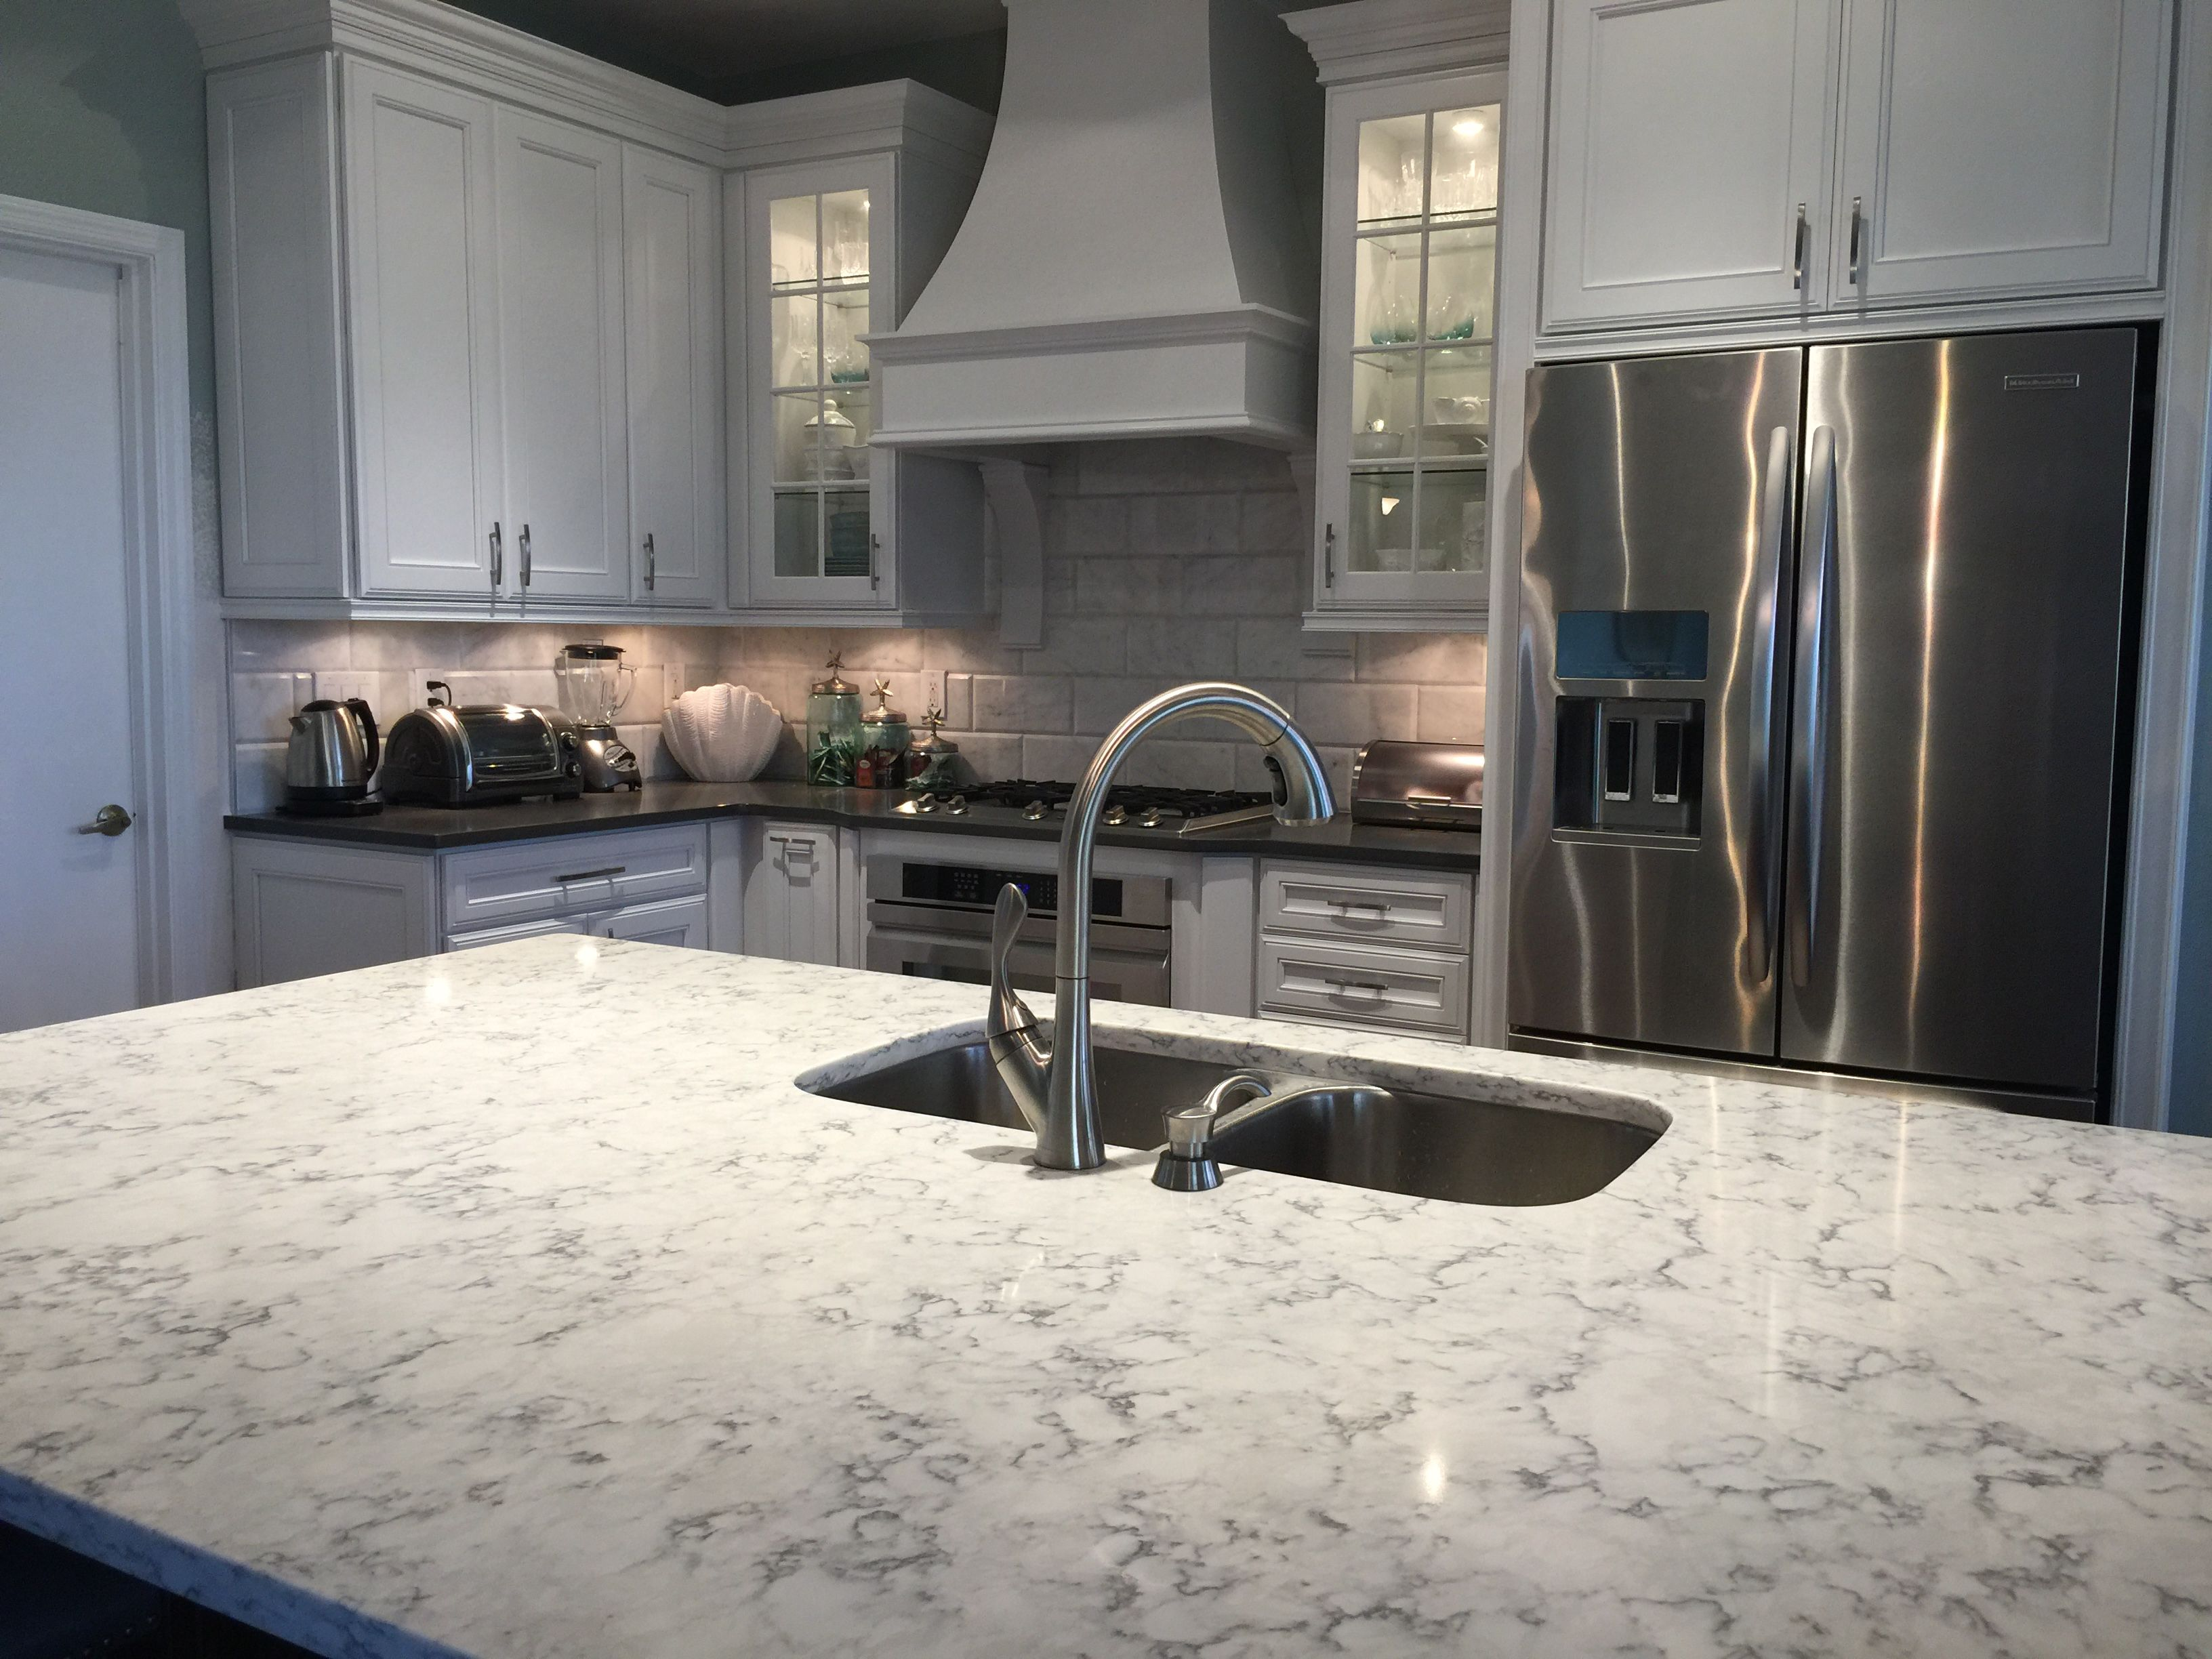 Modern Kitchen Quartz Countertops quartz countertop: viateralg hausys in rococo. | dawn's